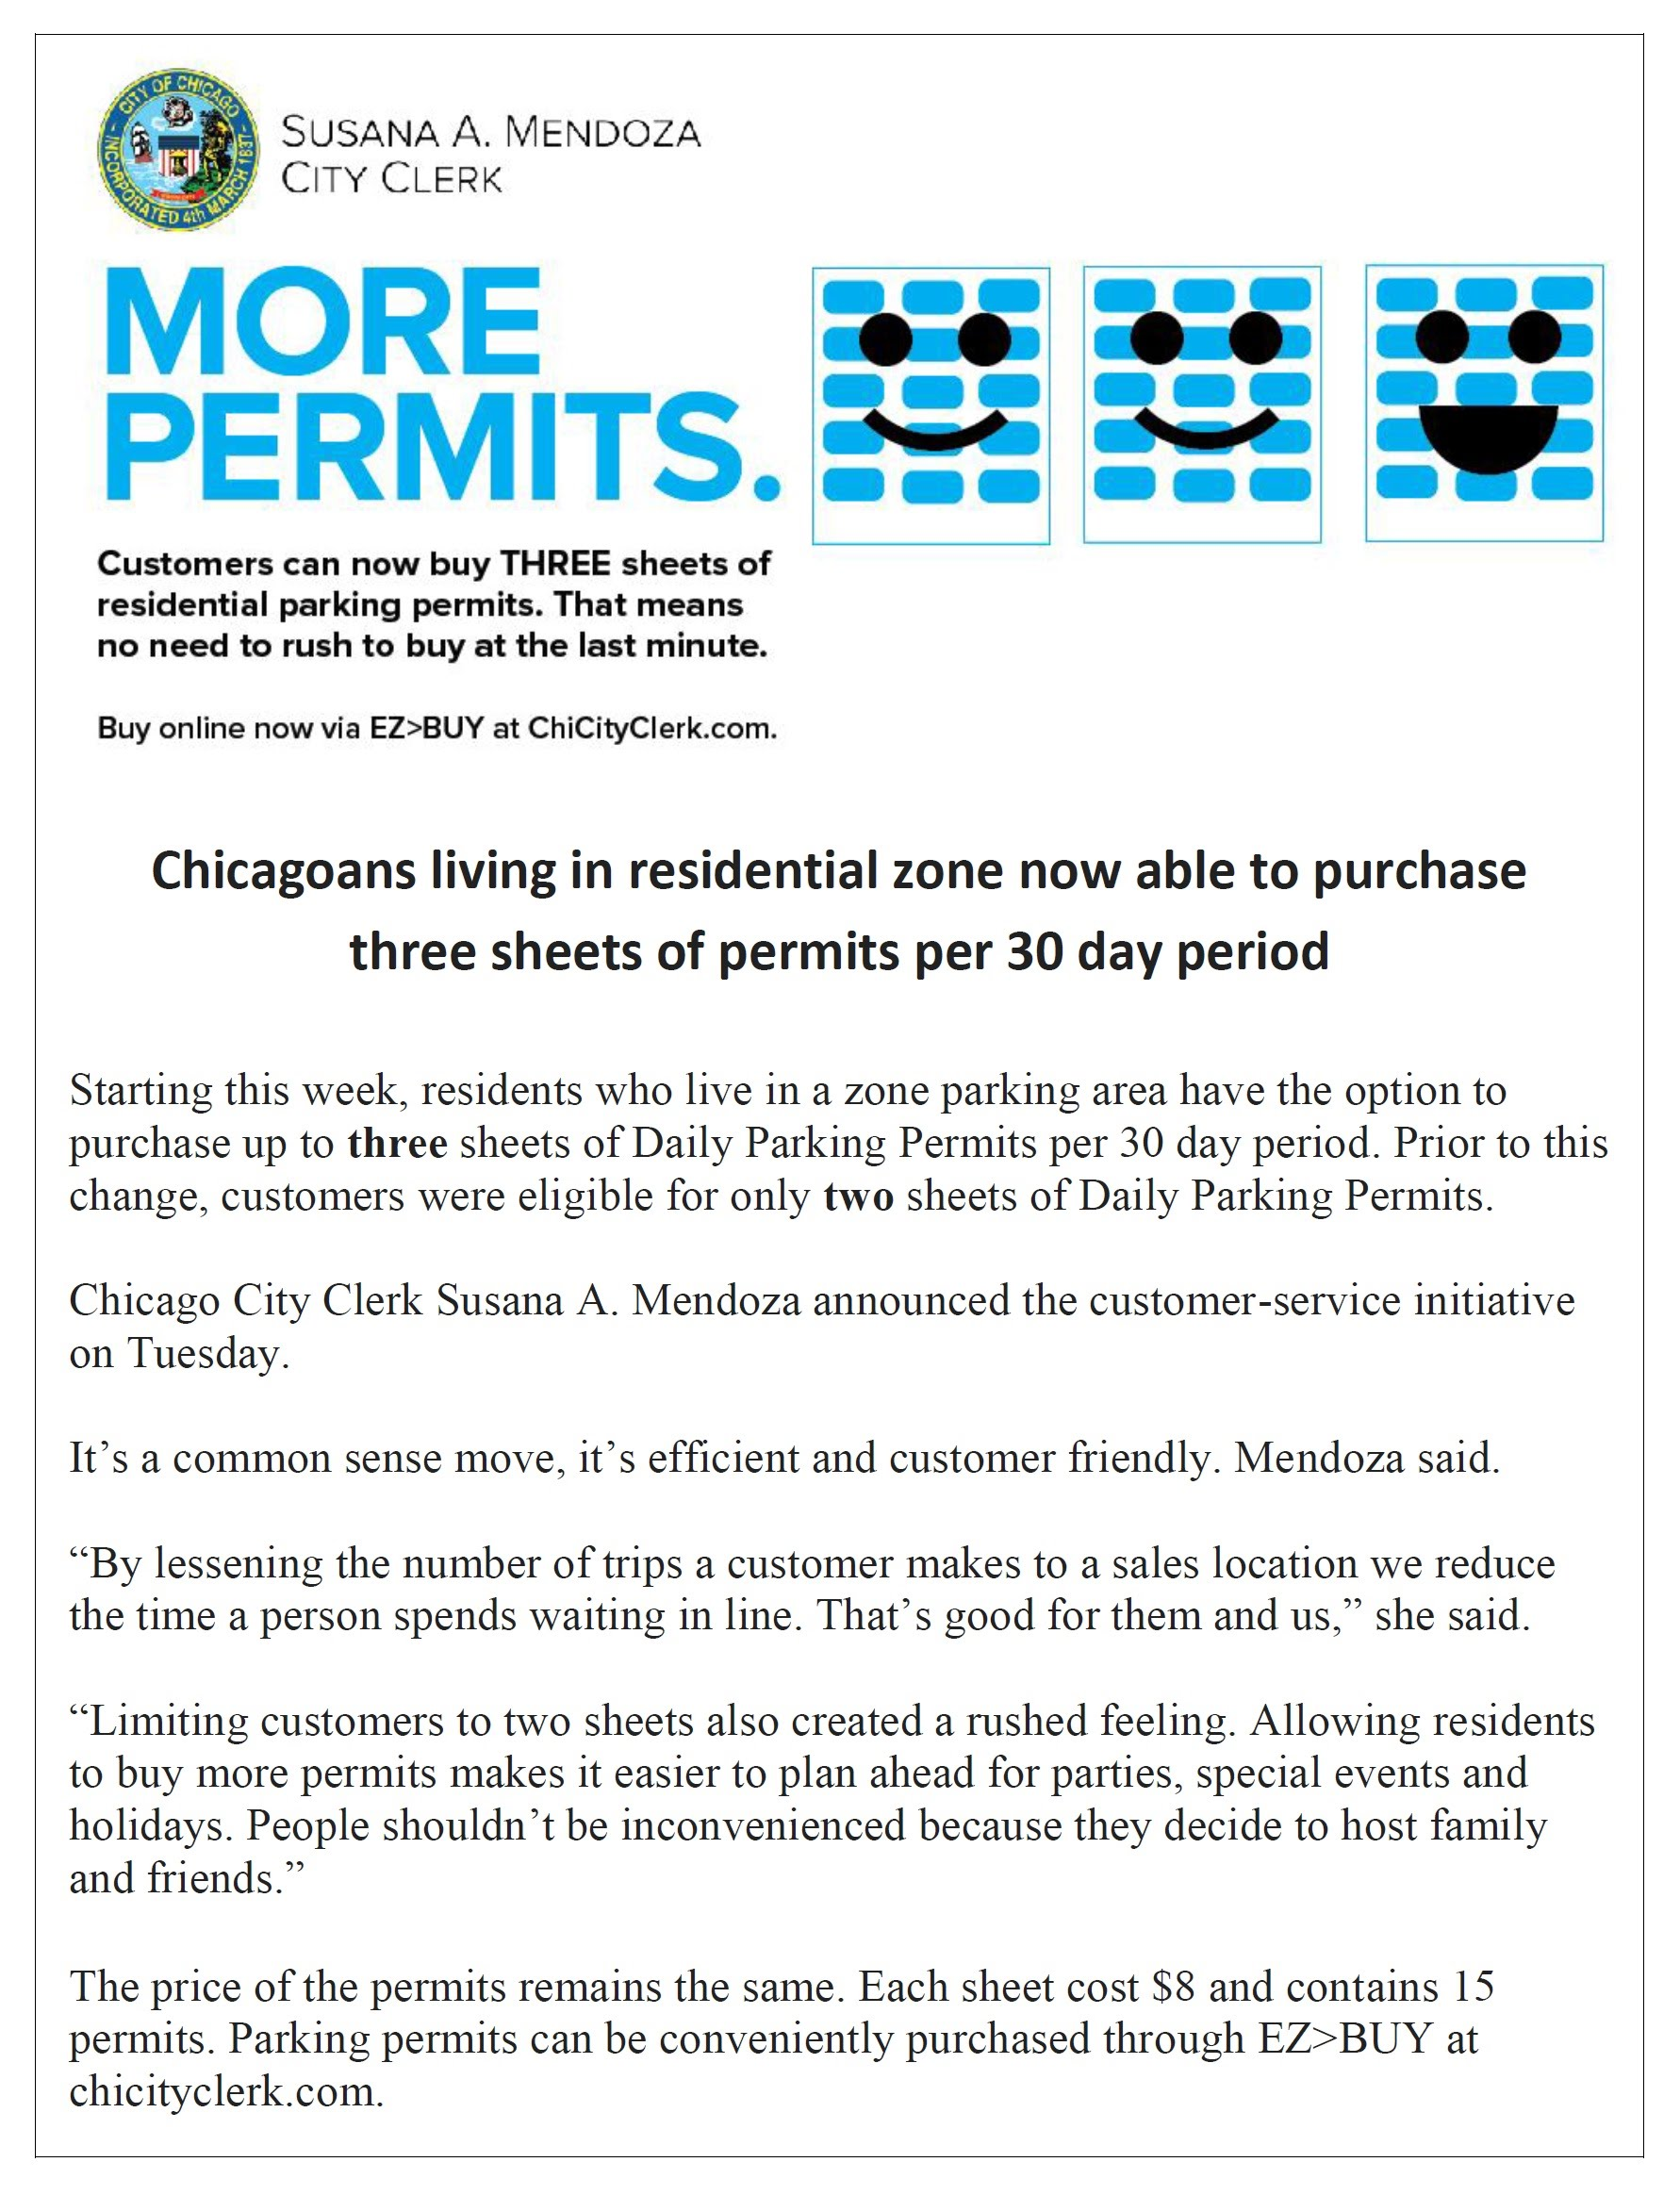 Chicagoans Who Live in Zoned Parking Can Now Buy 3 Daily